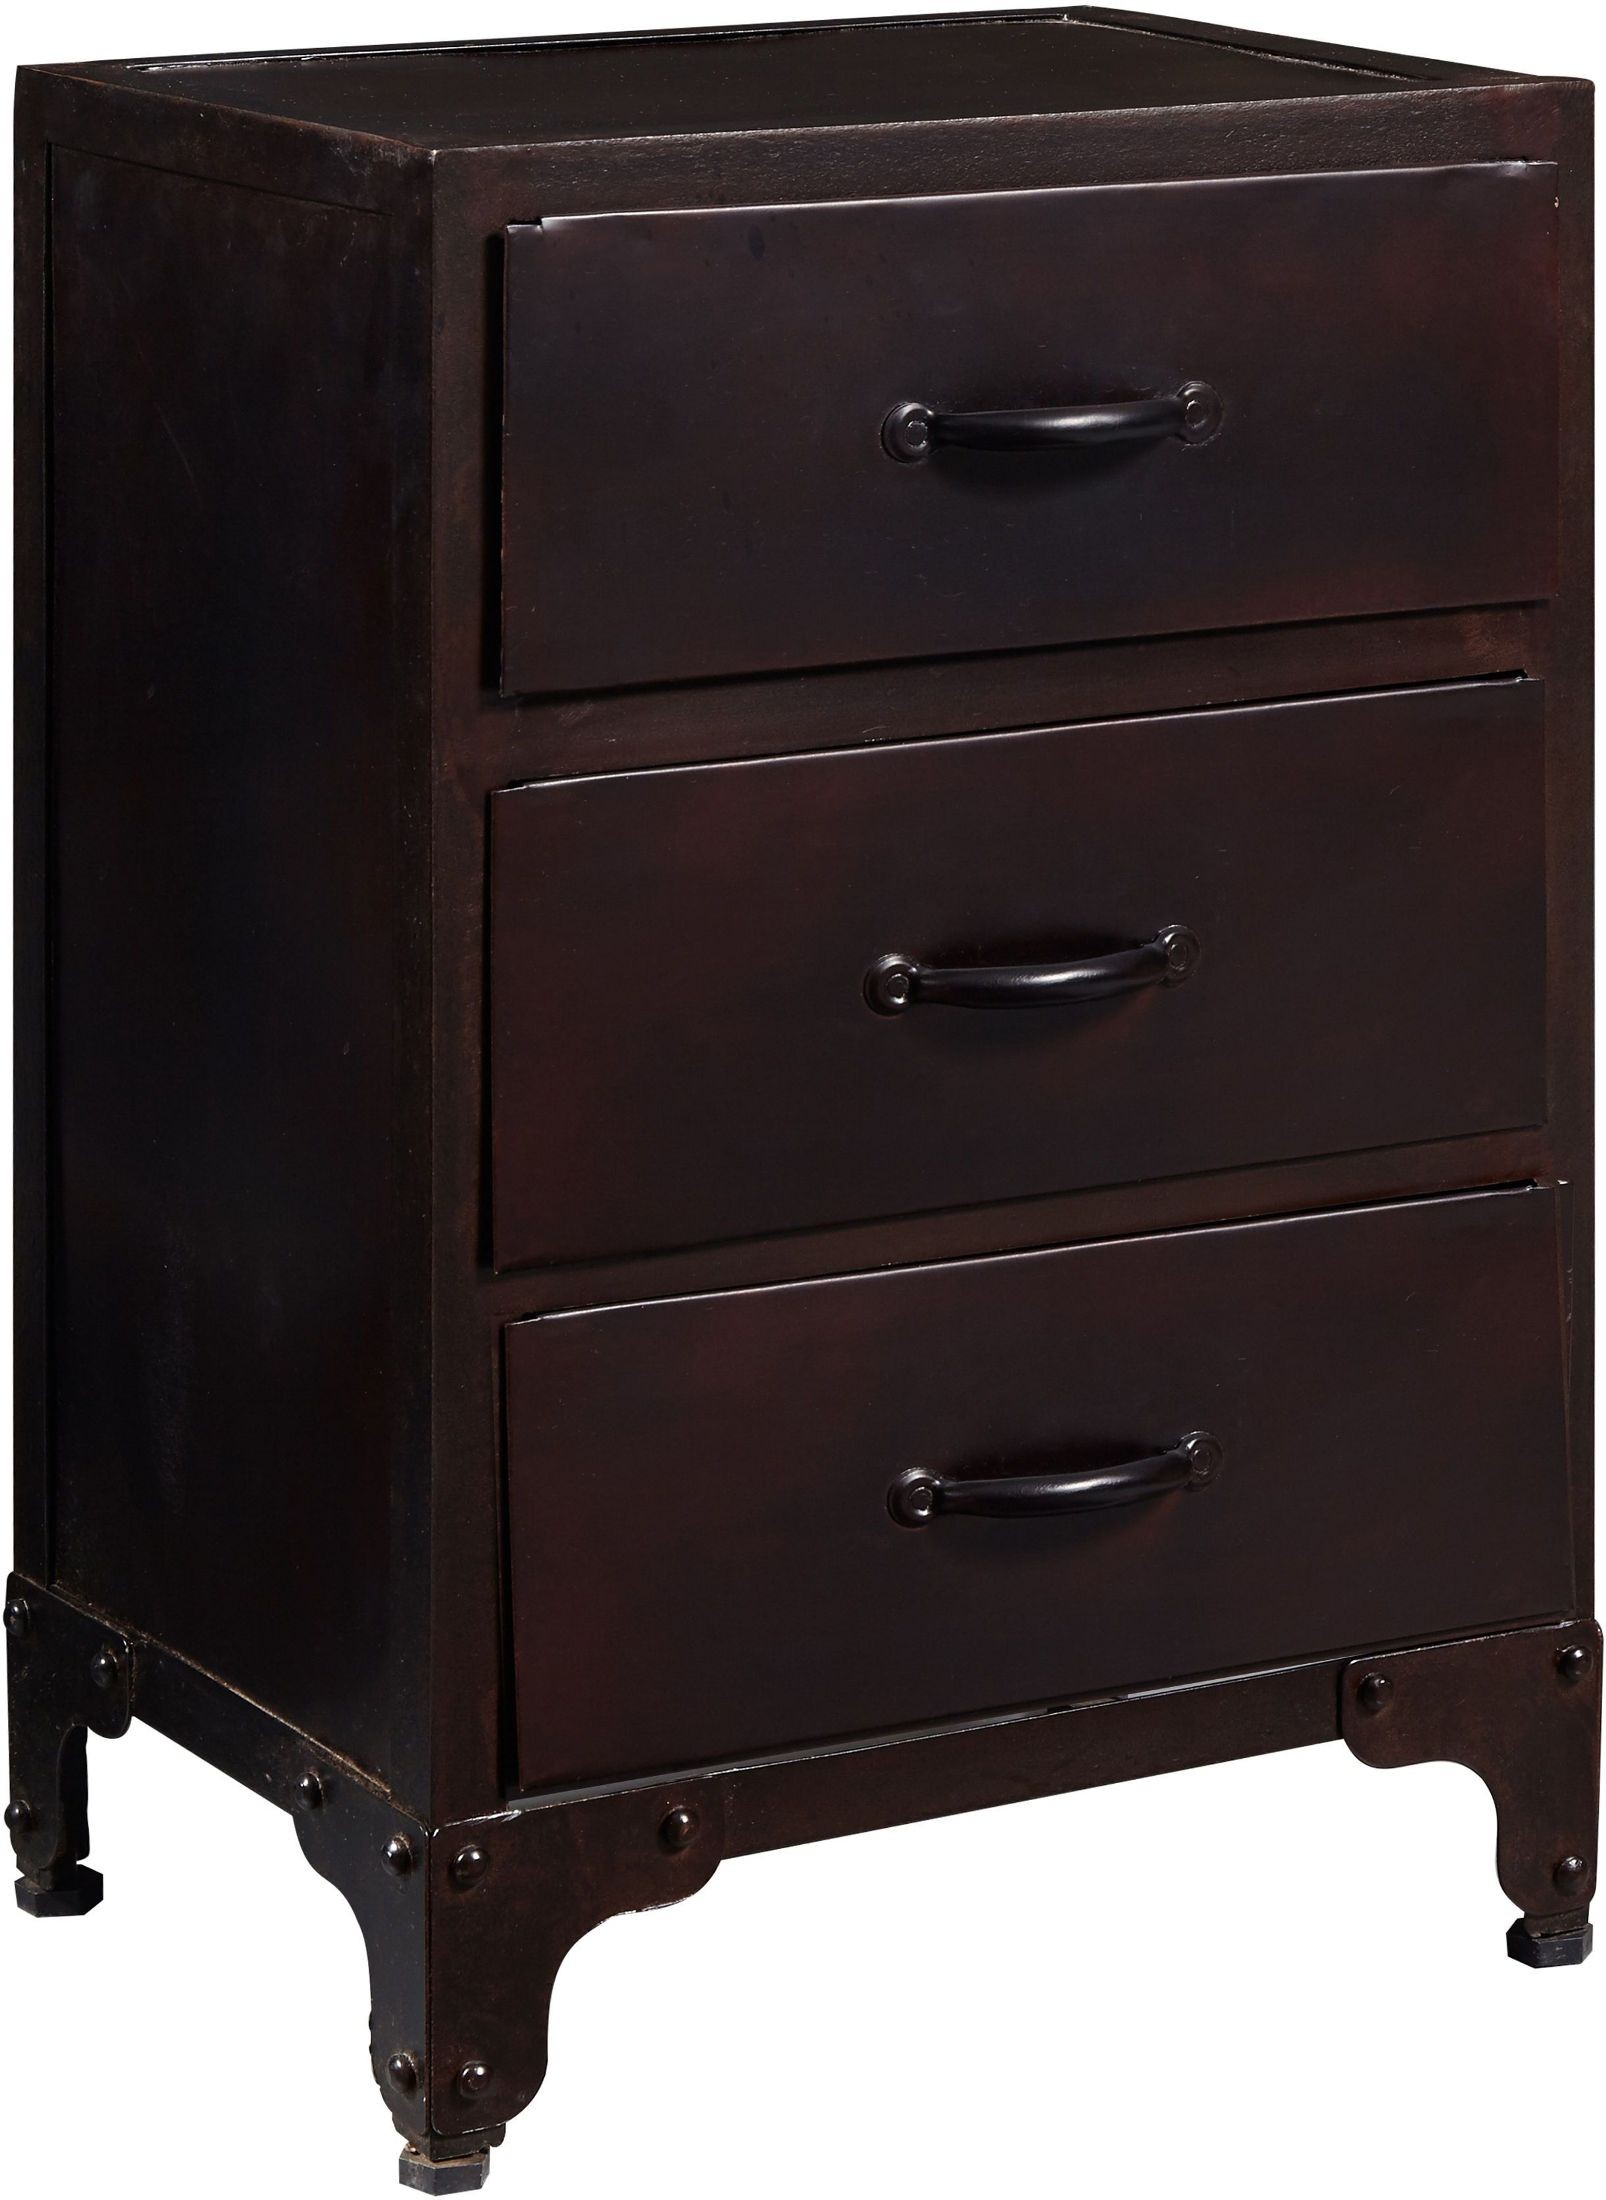 Iron Three Drawer Chairside Chest From Pulaski Coleman